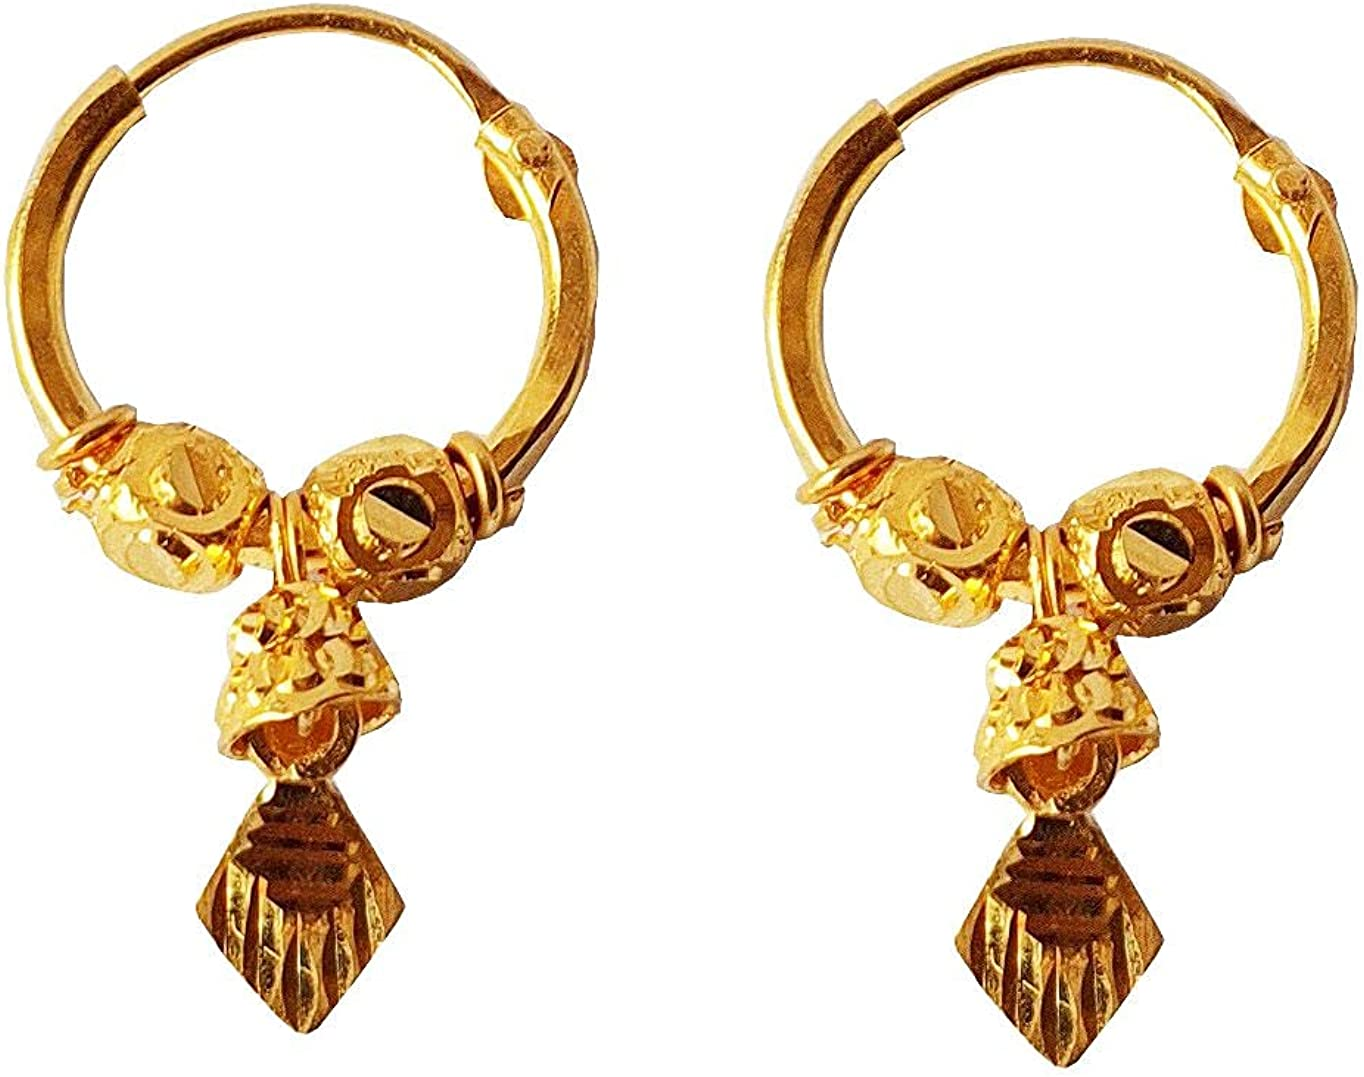 Certified Solid 22K/18K Yellow Fine Gold Unique Carved Design Hoop Earrings Available In Both 22 Carat And 18 Carat Fine Gold, For Women,Girls,Kids,Gifts,Bridal,Wedding,Engagement & Celebrations